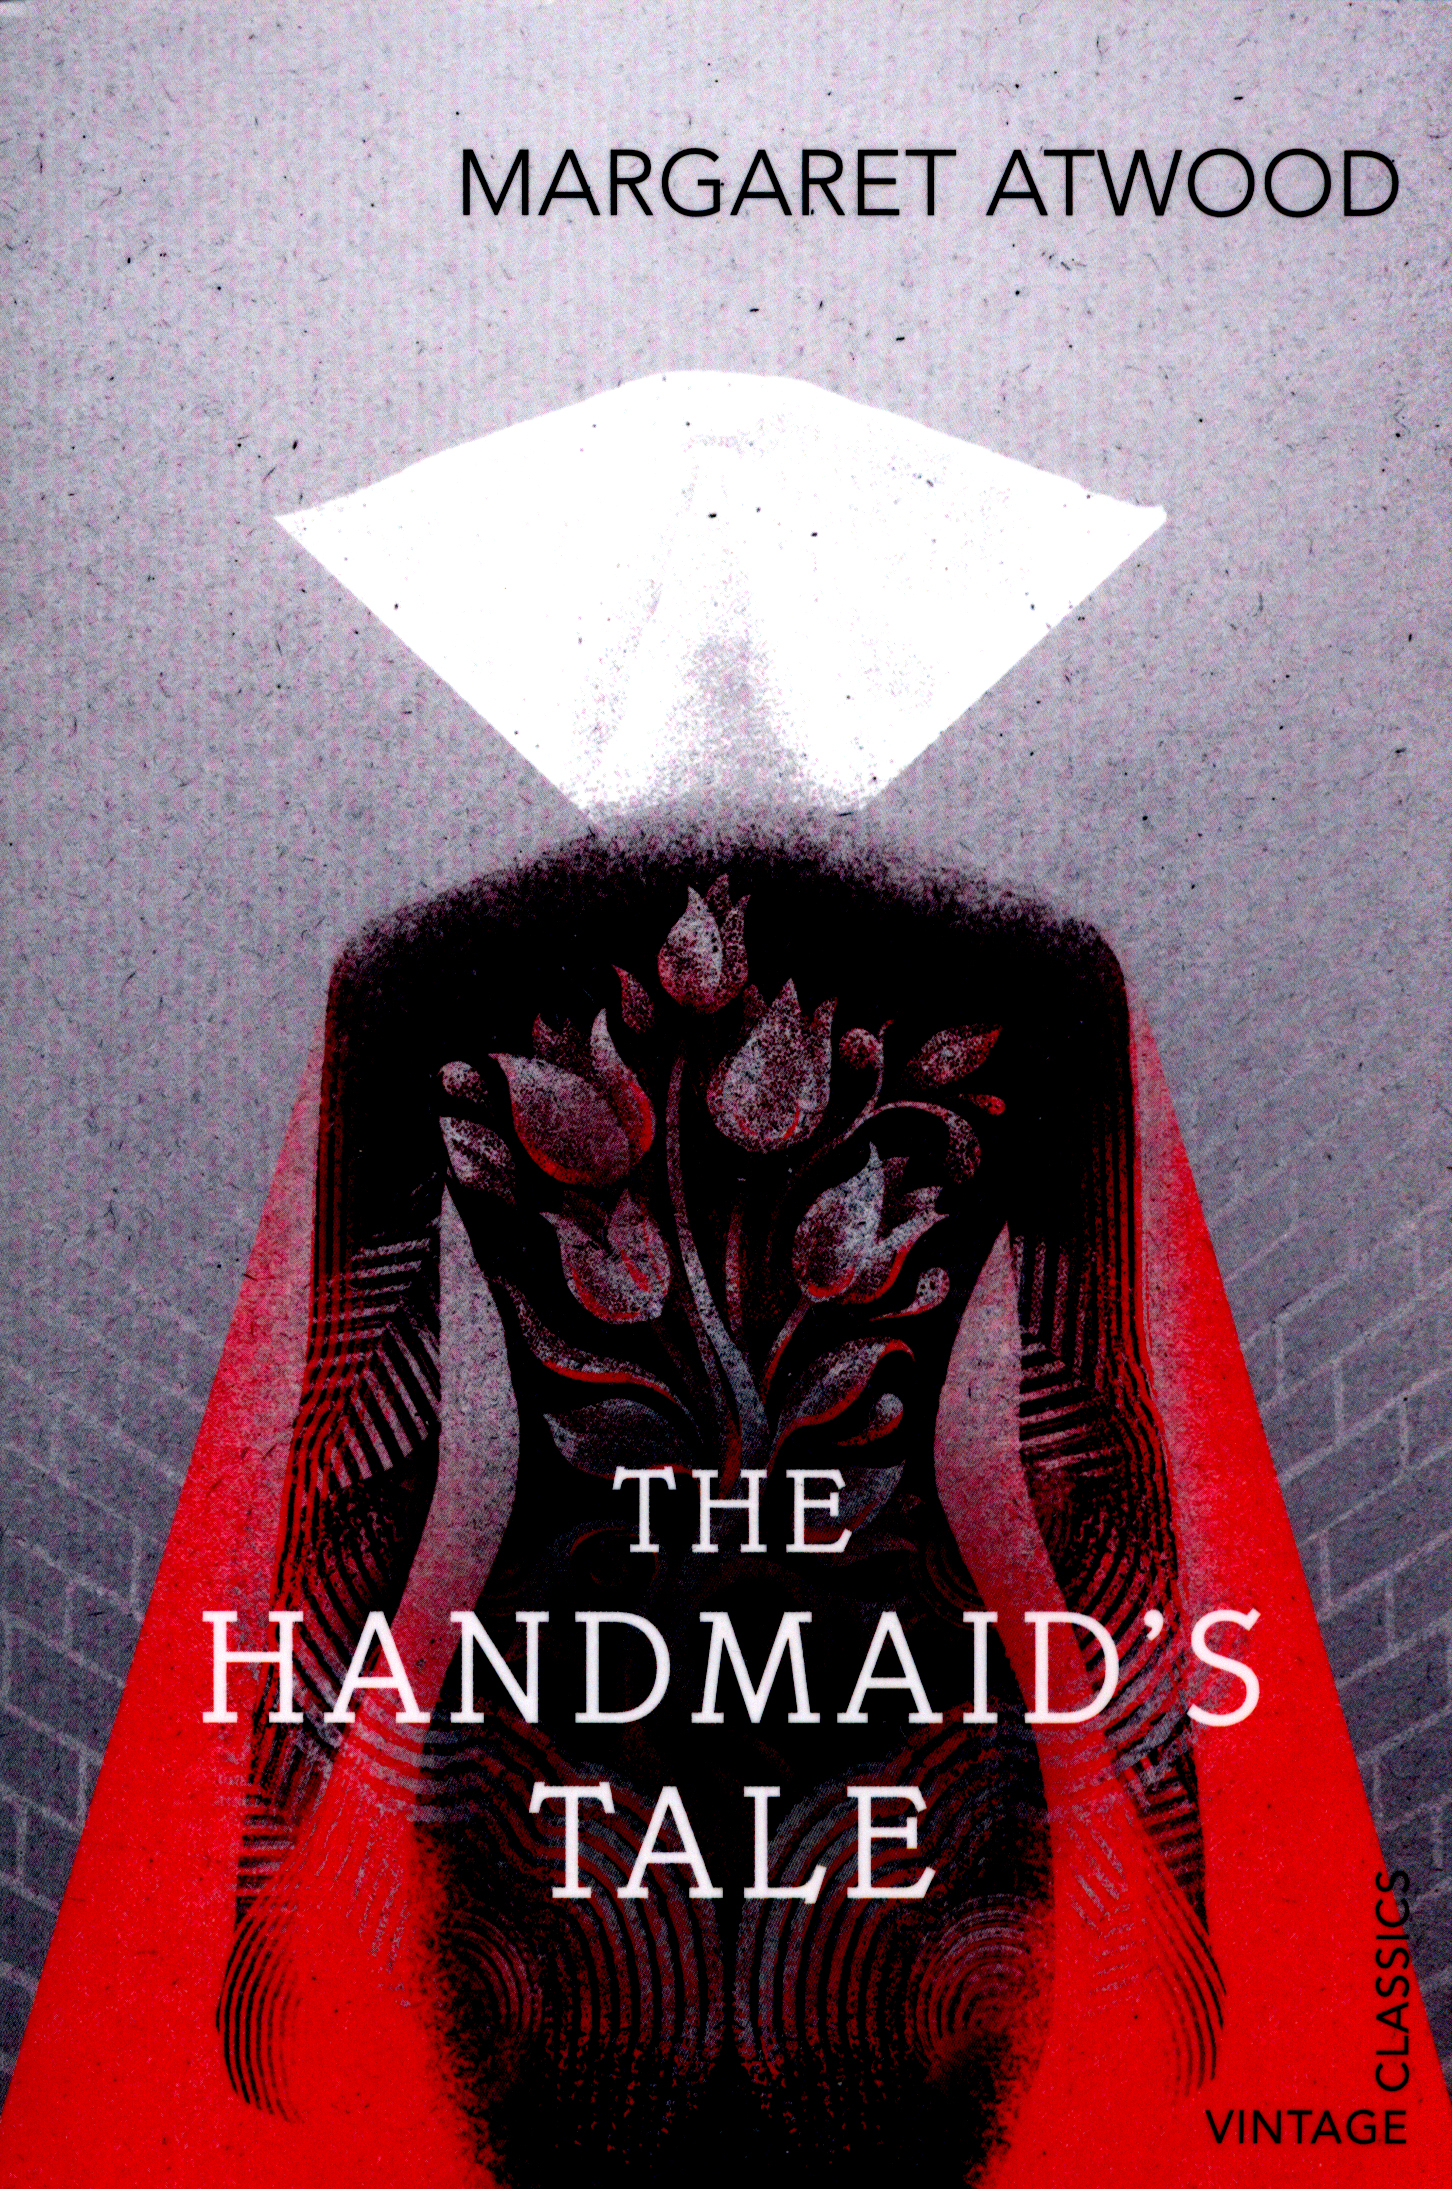 essays on the handmaids tale by margaret atwood Starting an essay on margaret atwood's the handmaid's tale organize your thoughts and more at our handy-dandy shmoop writing lab.